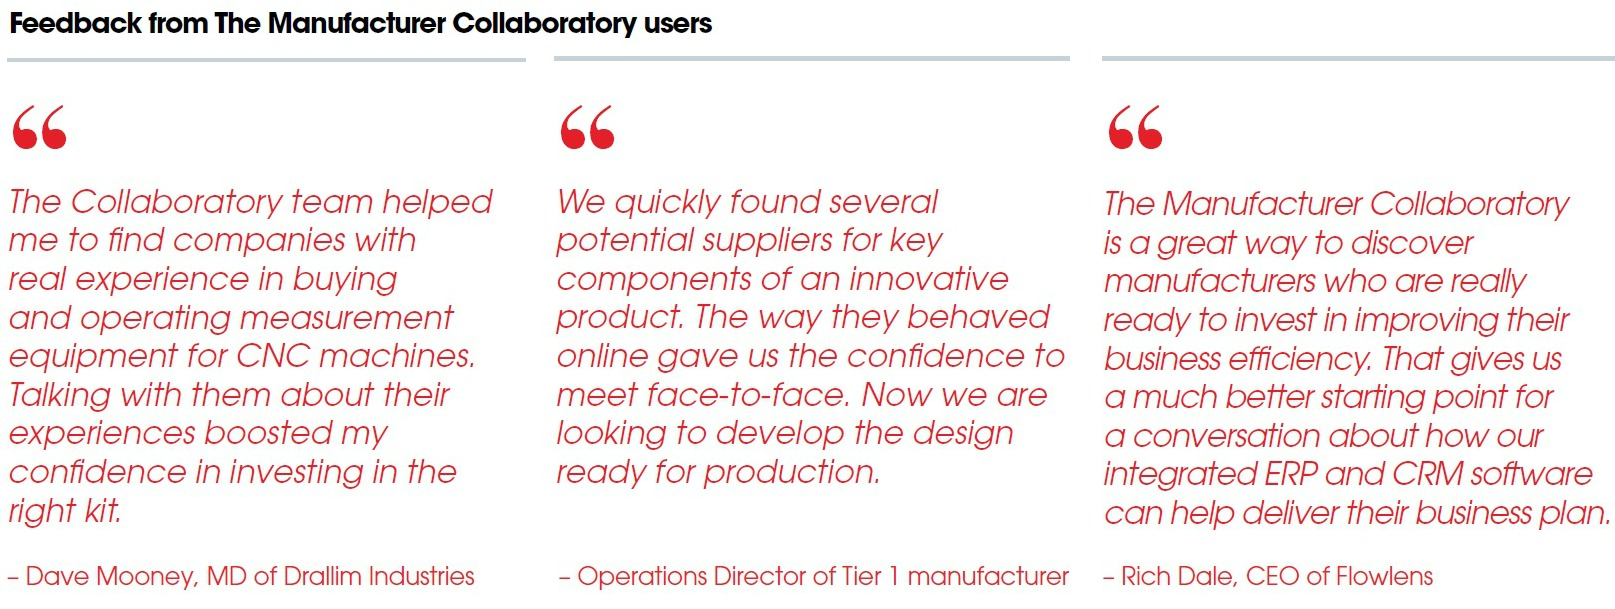 Feedback from The Manufacturer Collaboratory users